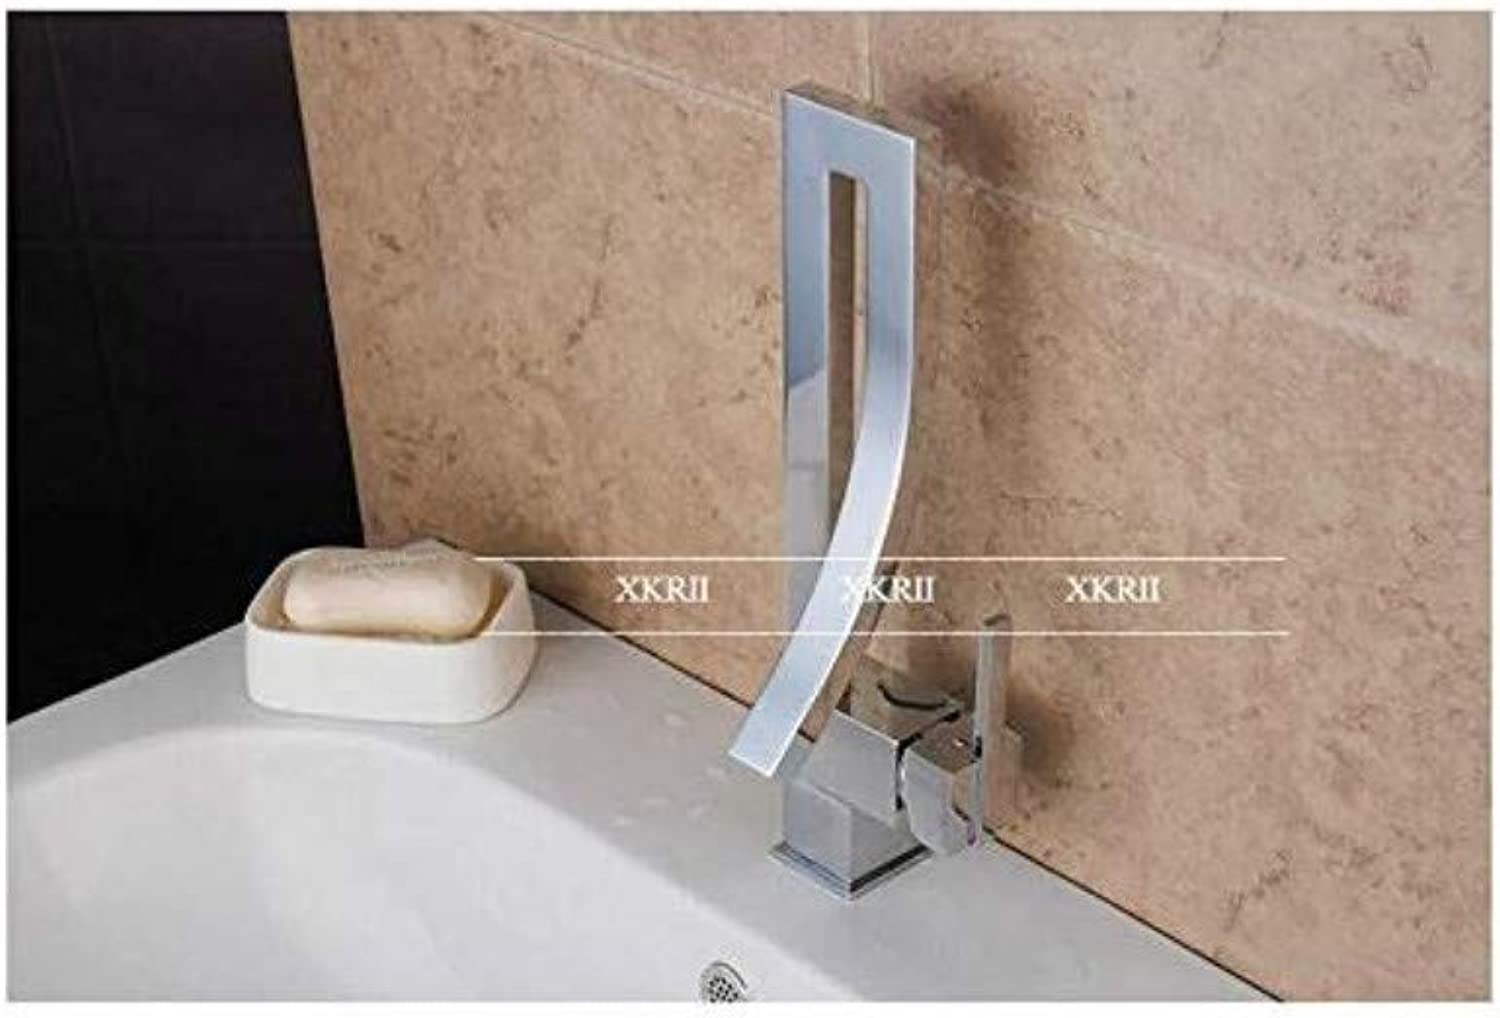 Modern Plated Kitchen Bathroom Faucet Copper Hot and Cold Kitchen Sink Dish Faucet Square Single Hole Single Handle Kitchen Faucet